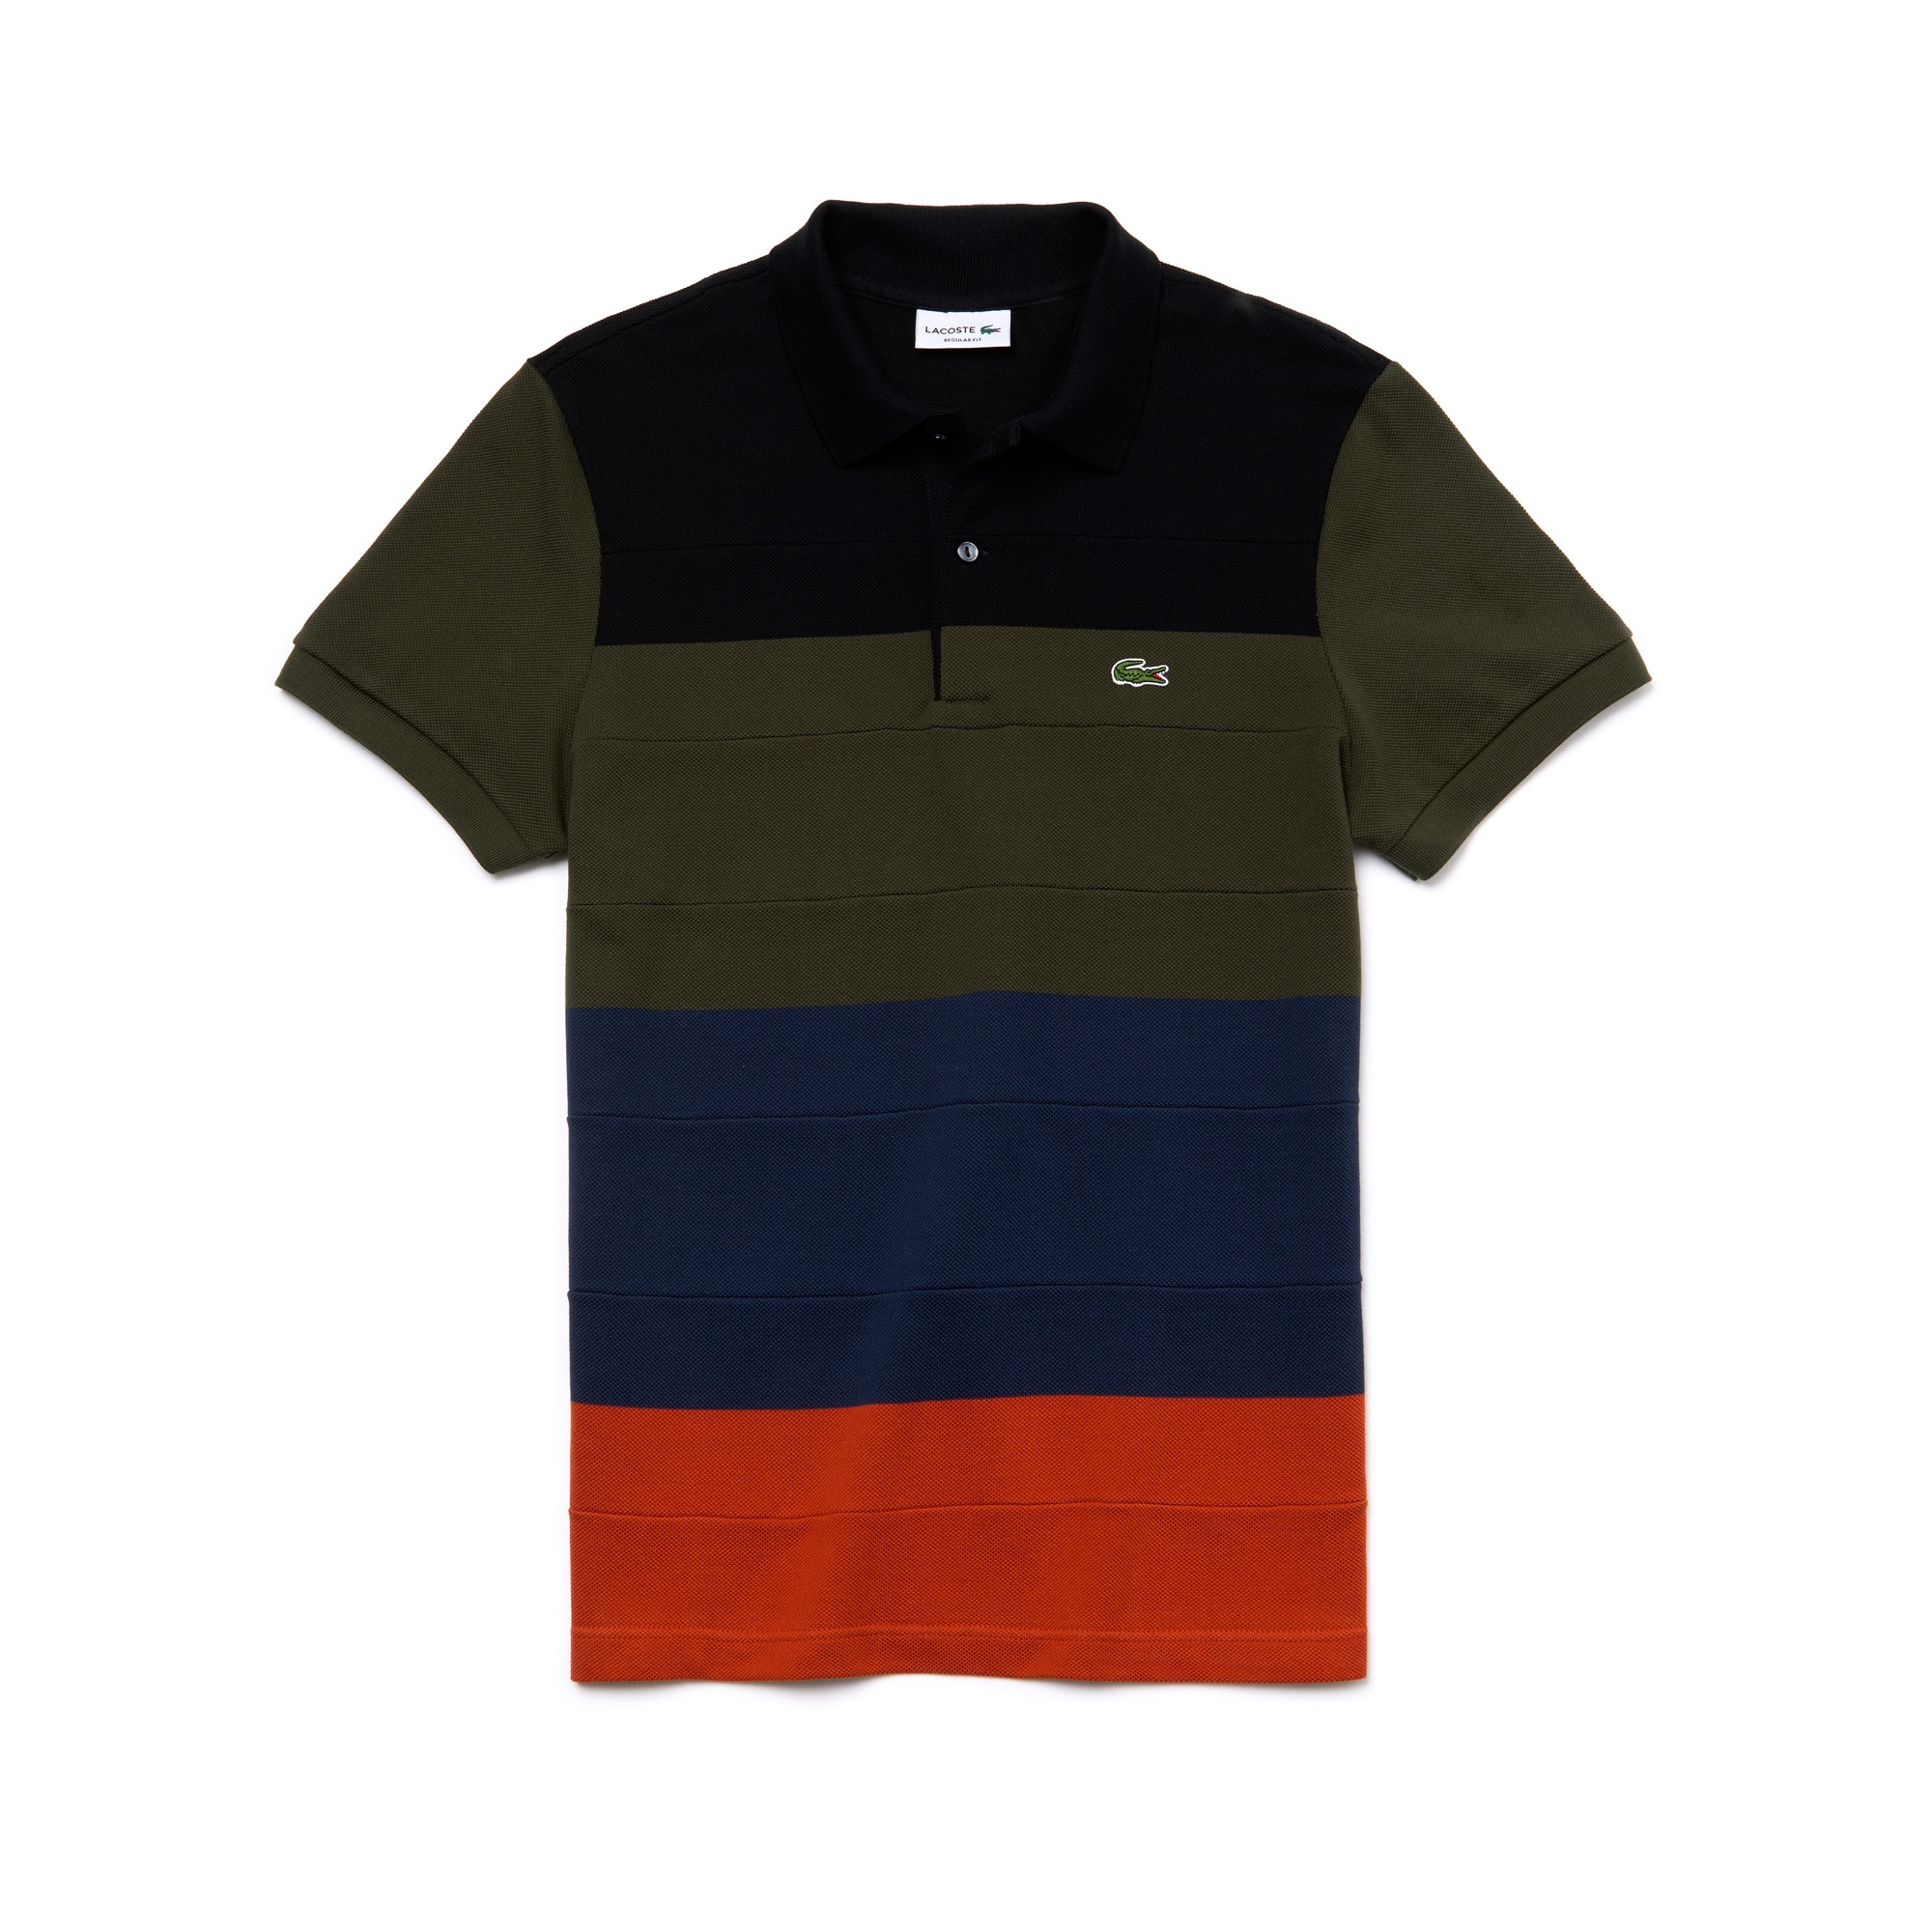 Men's Lacoste Regular Fit Colorblock Cotton Piqué Polo